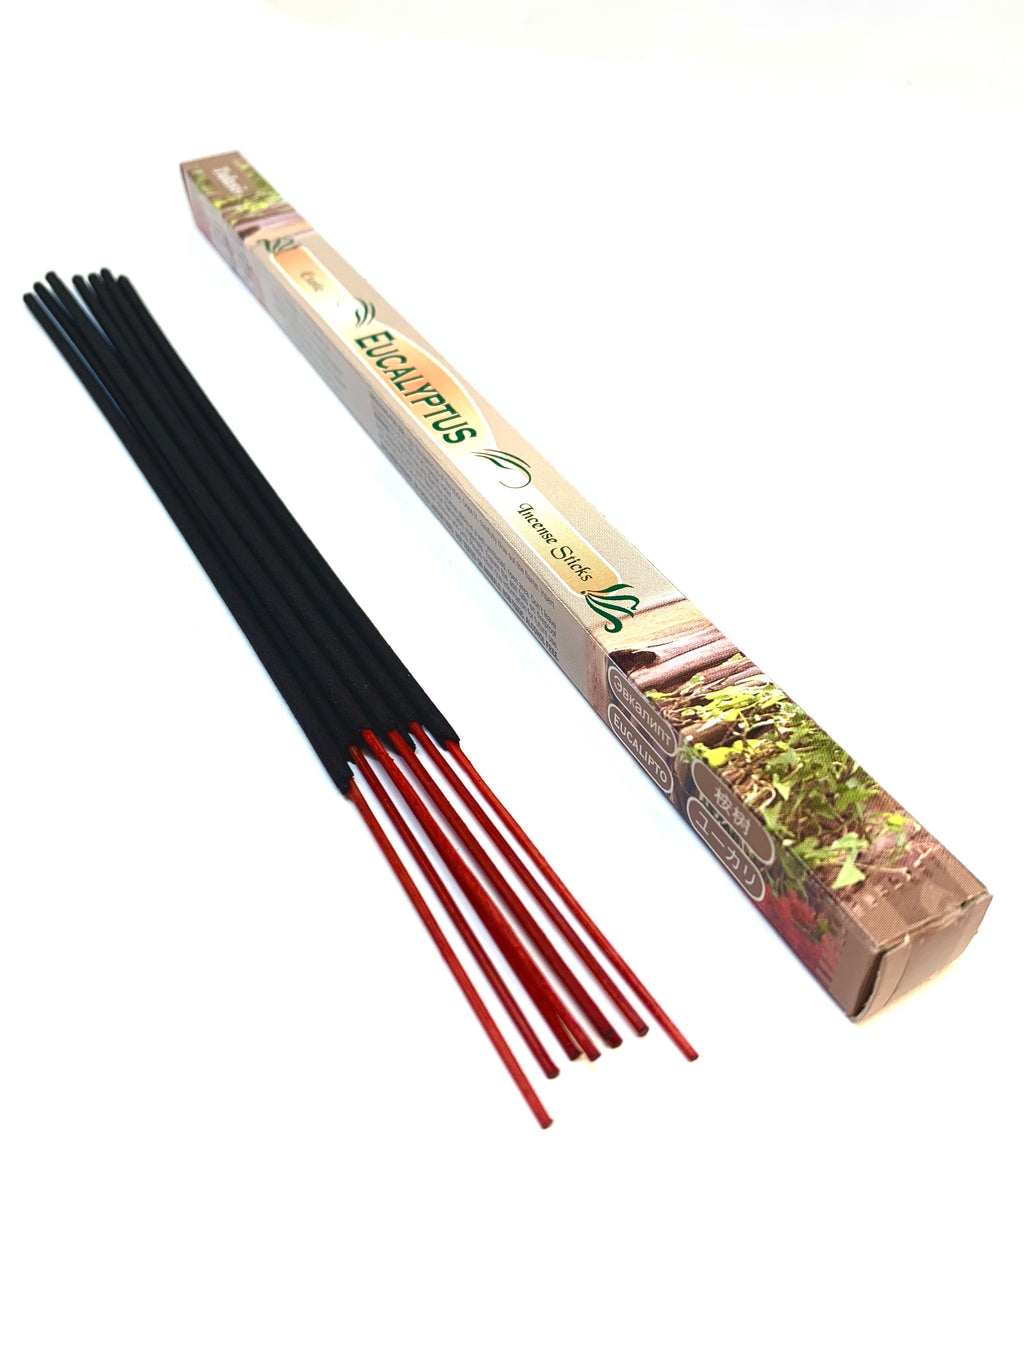 Eucalyptus Incense Sticks (Pack of 8 sticks)